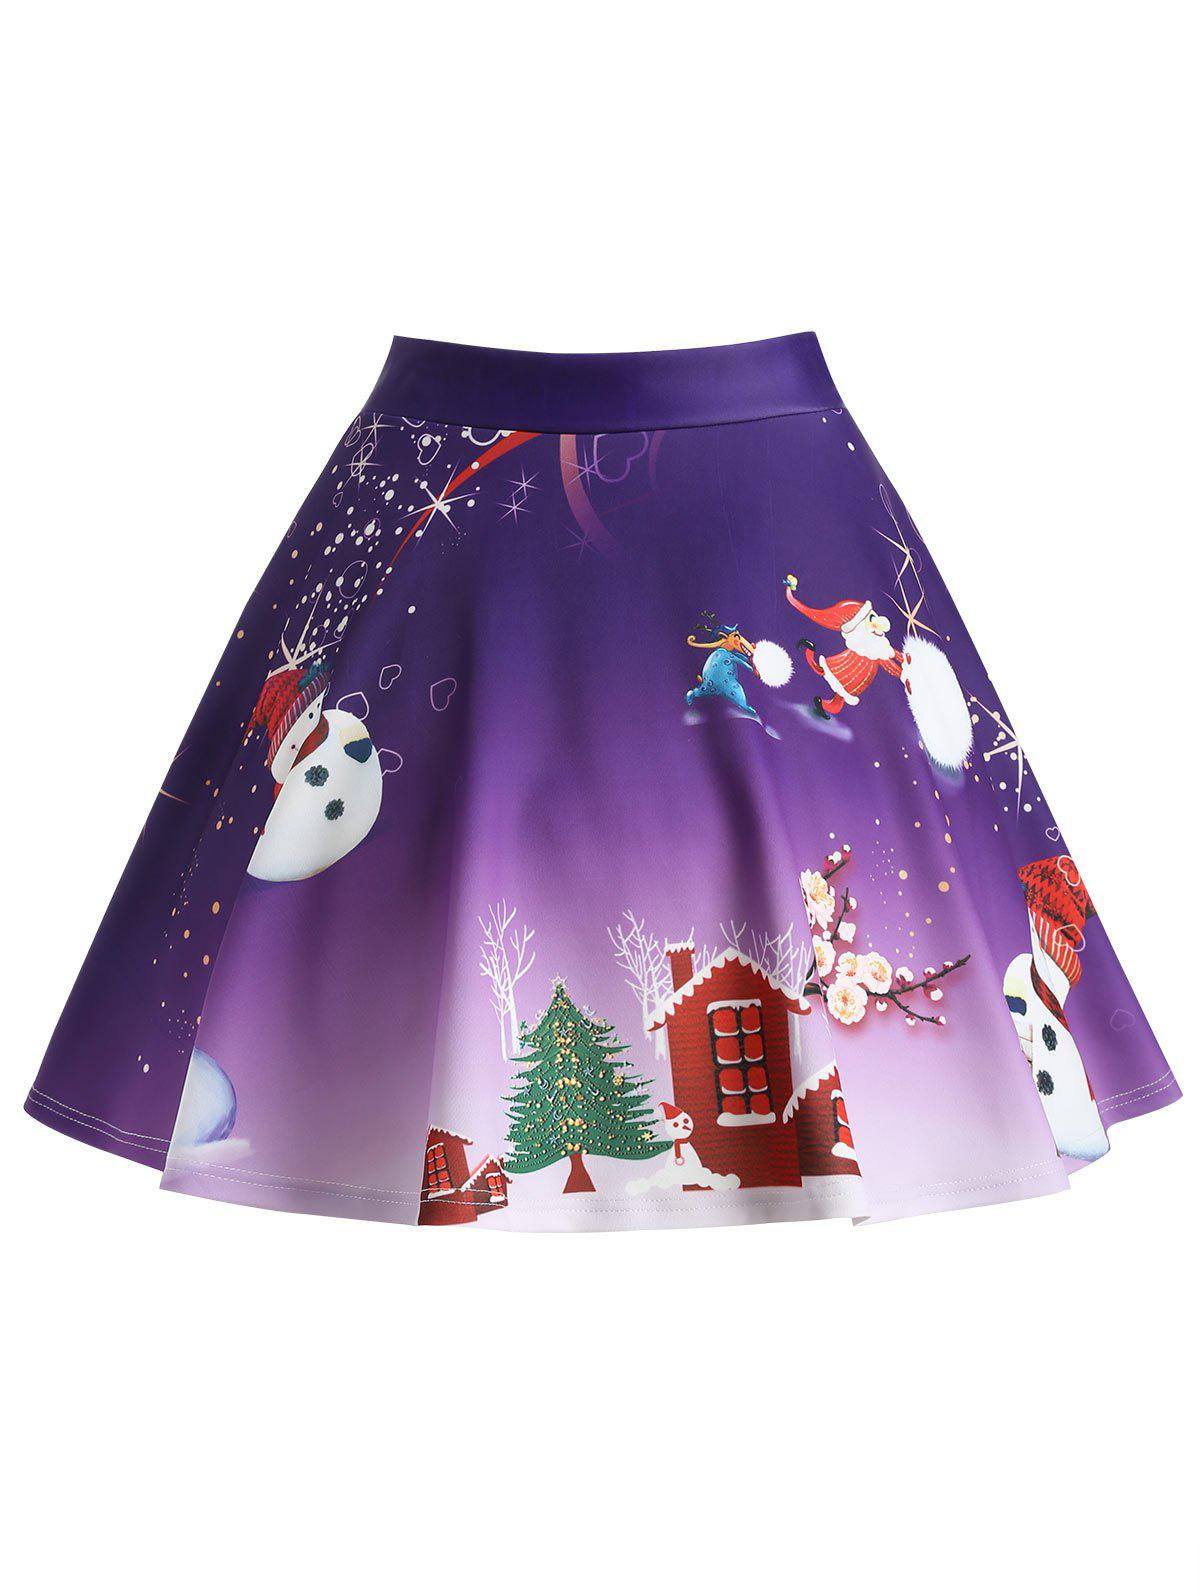 Christmas Tree Snowman Wintersweet Print Ombre SkirtWOMEN<br><br>Size: 2XL; Color: PURPLE; Material: Polyester,Spandex; Length: Mini; Silhouette: A-Line; Pattern Type: Print; Season: Winter; With Belt: No; Weight: 0.3300kg; Package Contents: 1 x Skirt;